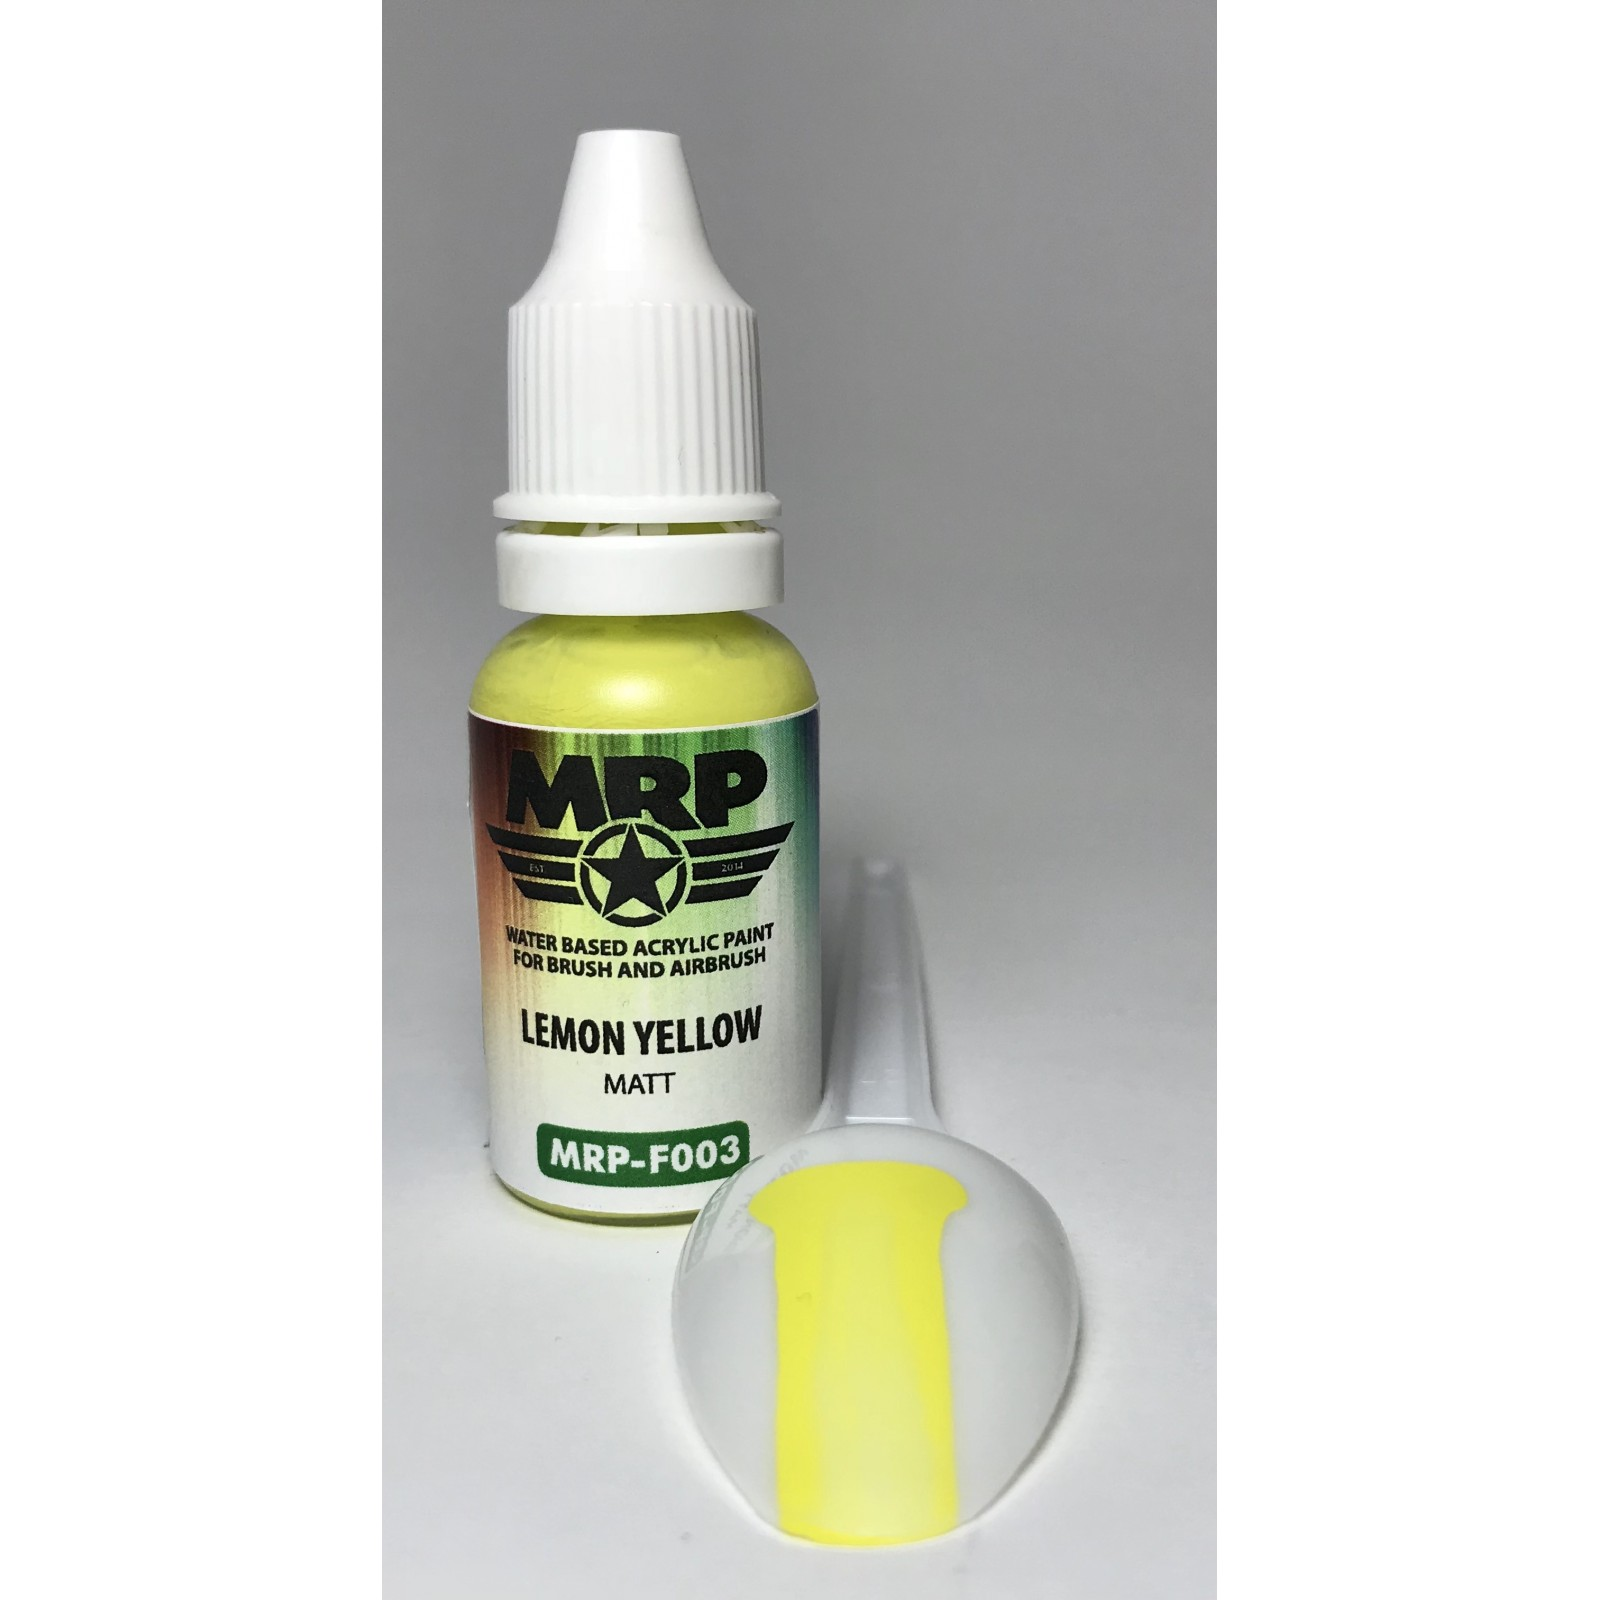 MRP-F03 Lemon Yellow